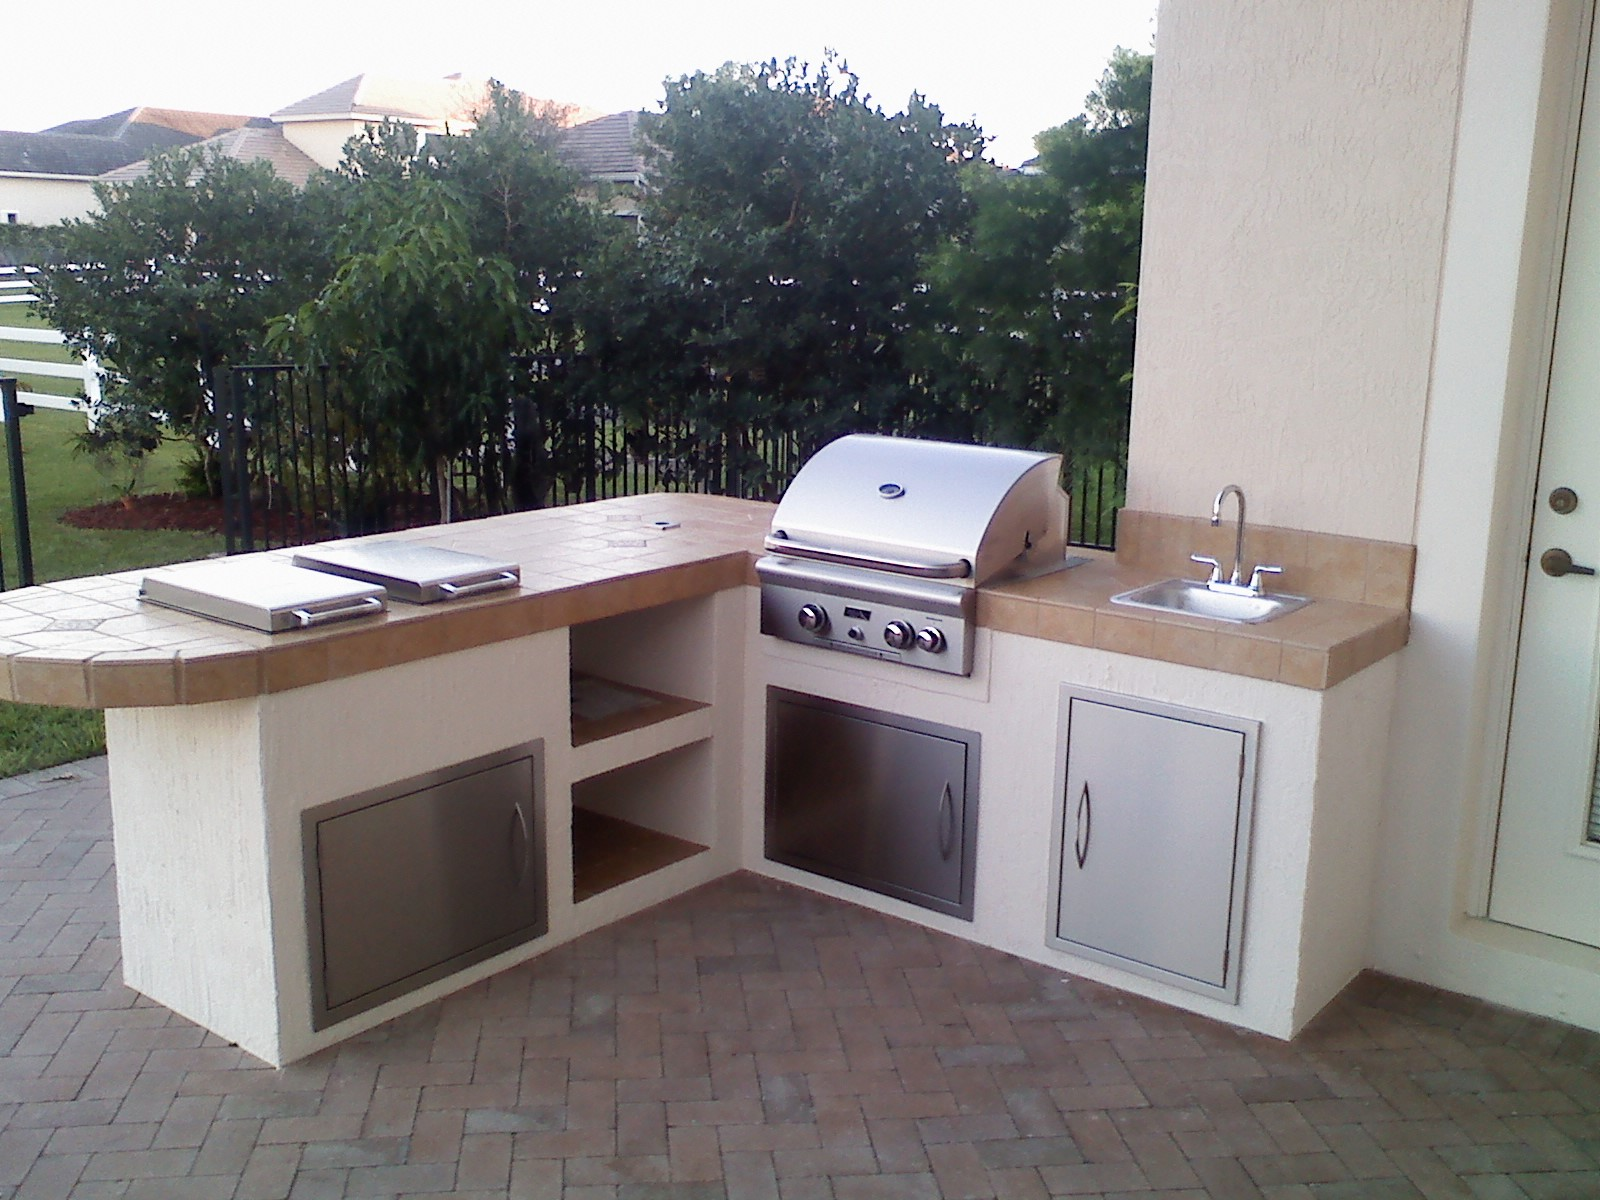 AOG24 built in american outdoor grill island outdoor kitchen with